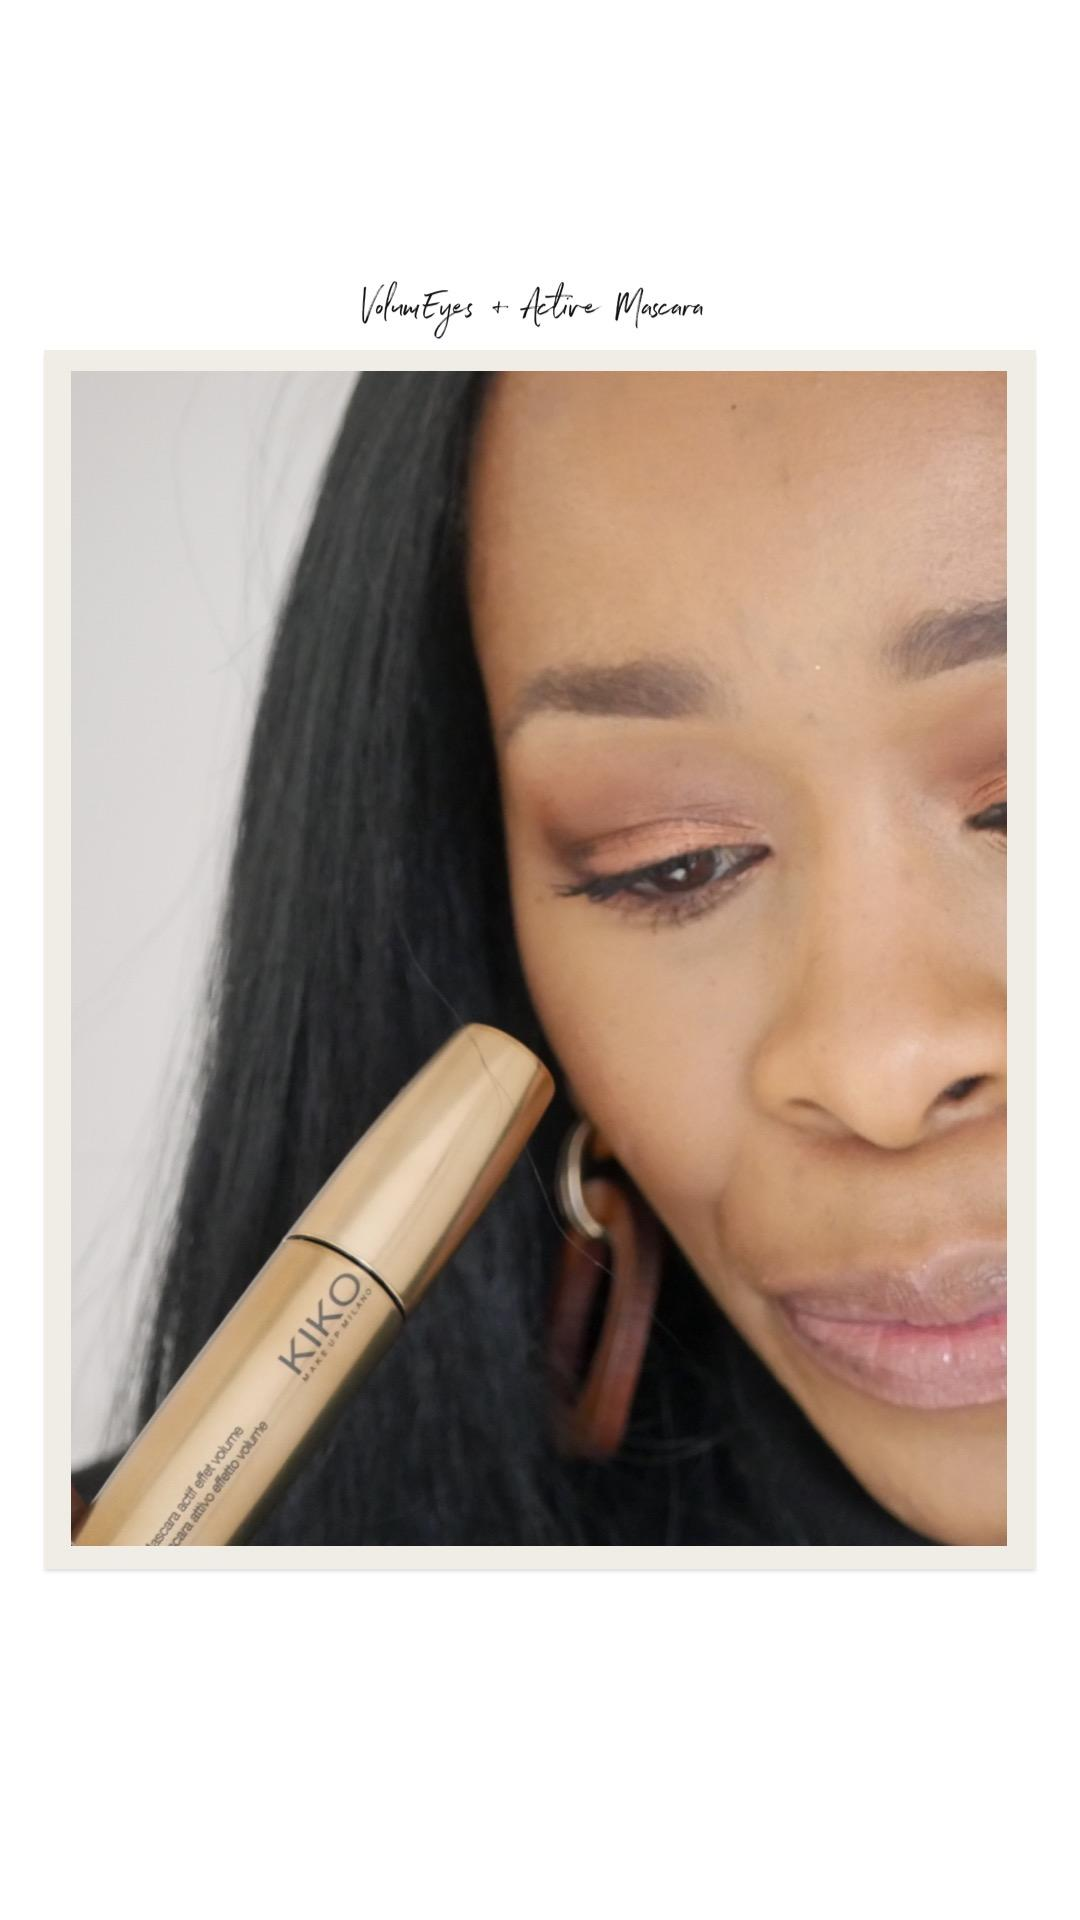 What I bought from KIKO Milano Online| My thoughts on everything I bought - all under £10 including this VolumEyes+Mascara |If you're looking for cruelty free, affordable makeup and beauty, then you'll definitely be interested| www.kittyandb.com #KIKOTrendsetters #mascara #beautyreviews #crueltyfree #beautyblog #crueltyfreemascara